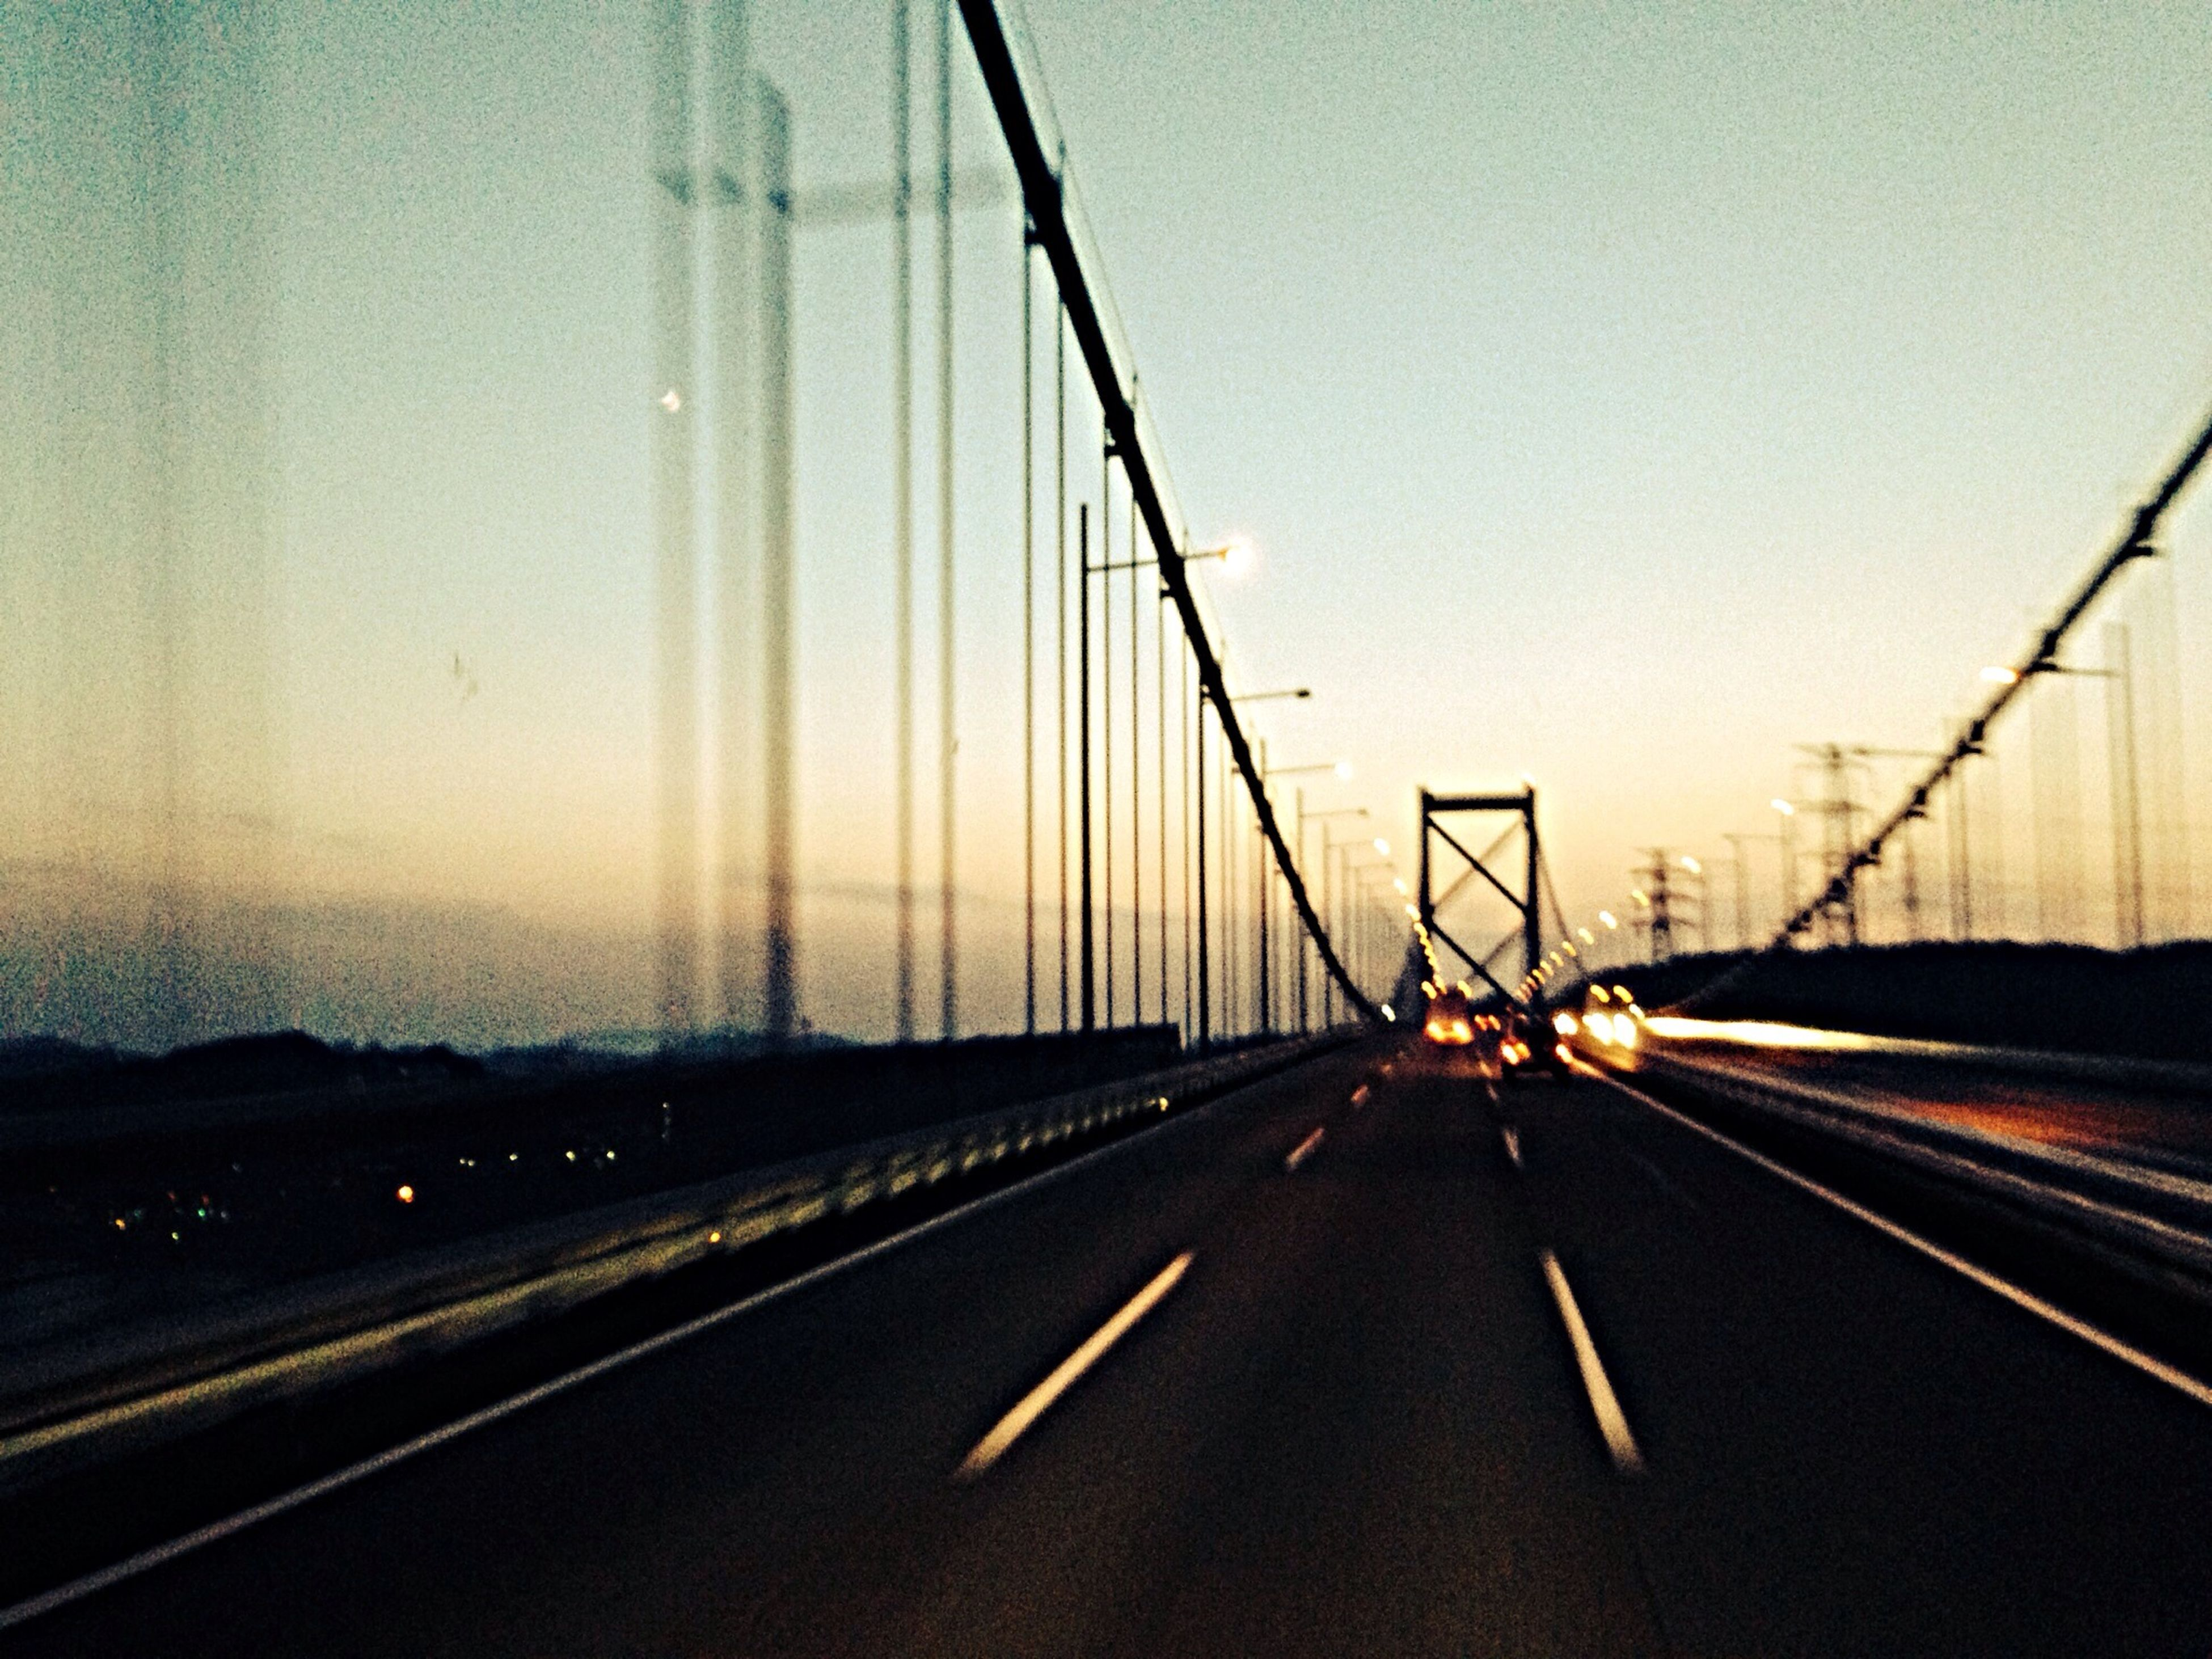 transportation, road, the way forward, road marking, connection, diminishing perspective, clear sky, mode of transport, car, vanishing point, sunset, sky, land vehicle, highway, on the move, travel, suspension bridge, street light, bridge - man made structure, dusk